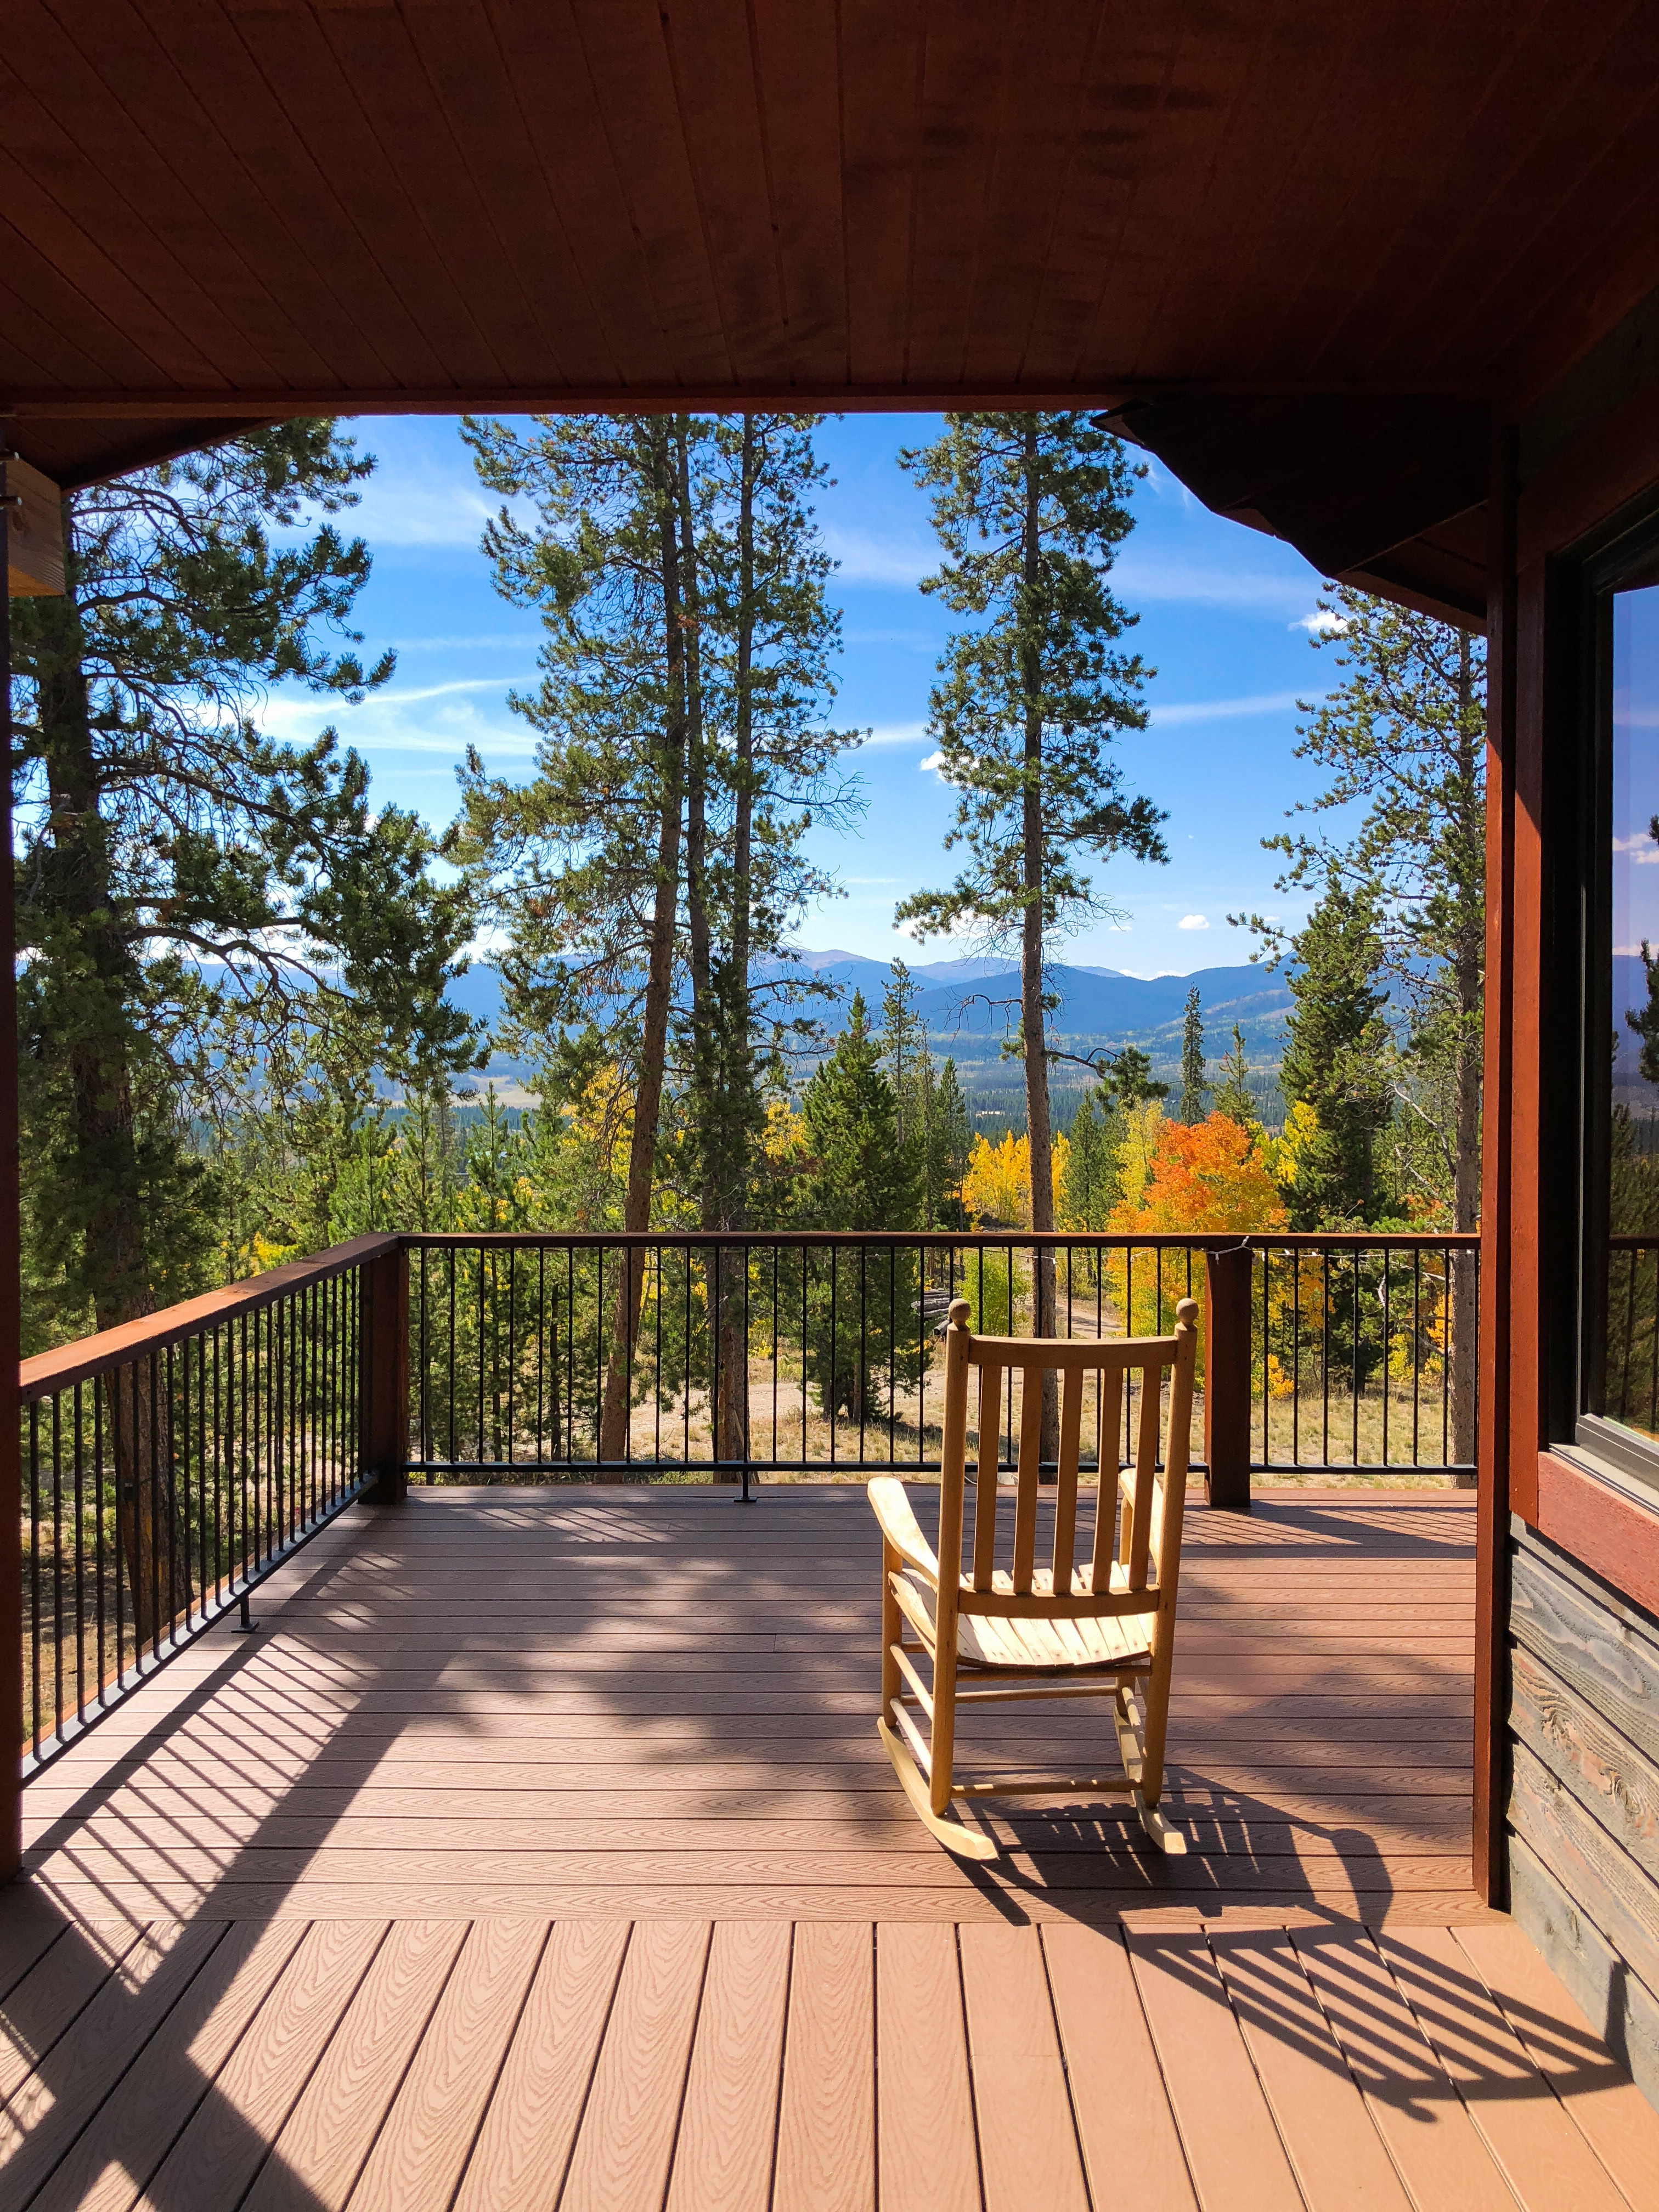 Sip morning coffee on the deck while taking in fantastic mountain views.